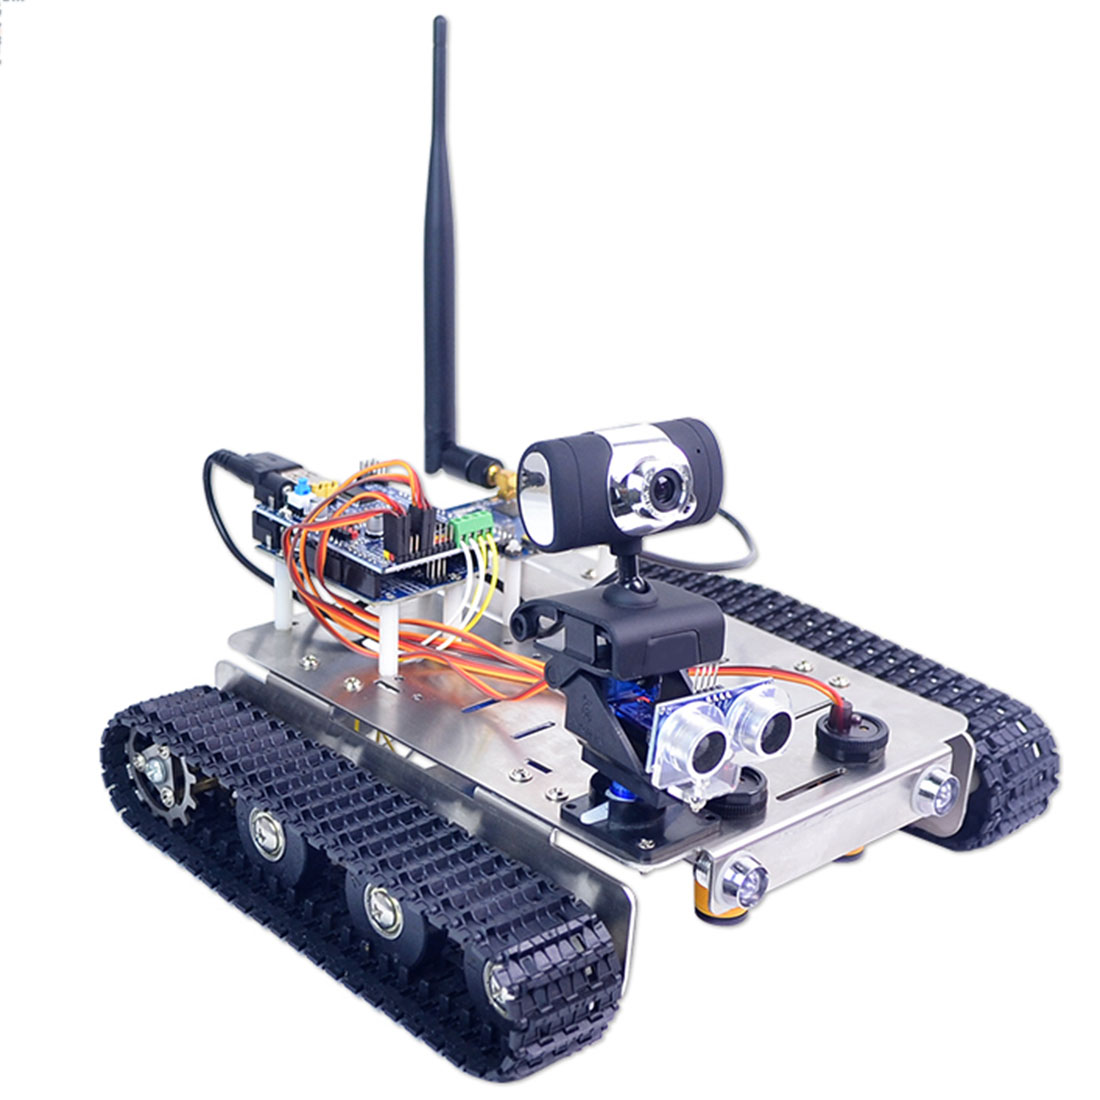 DIY Wifi + Bluetooth Programmable Robot Chassis Track Tank Steam Educational Car With Graphic  XR BLOCK Linux For Arduino UNO R3